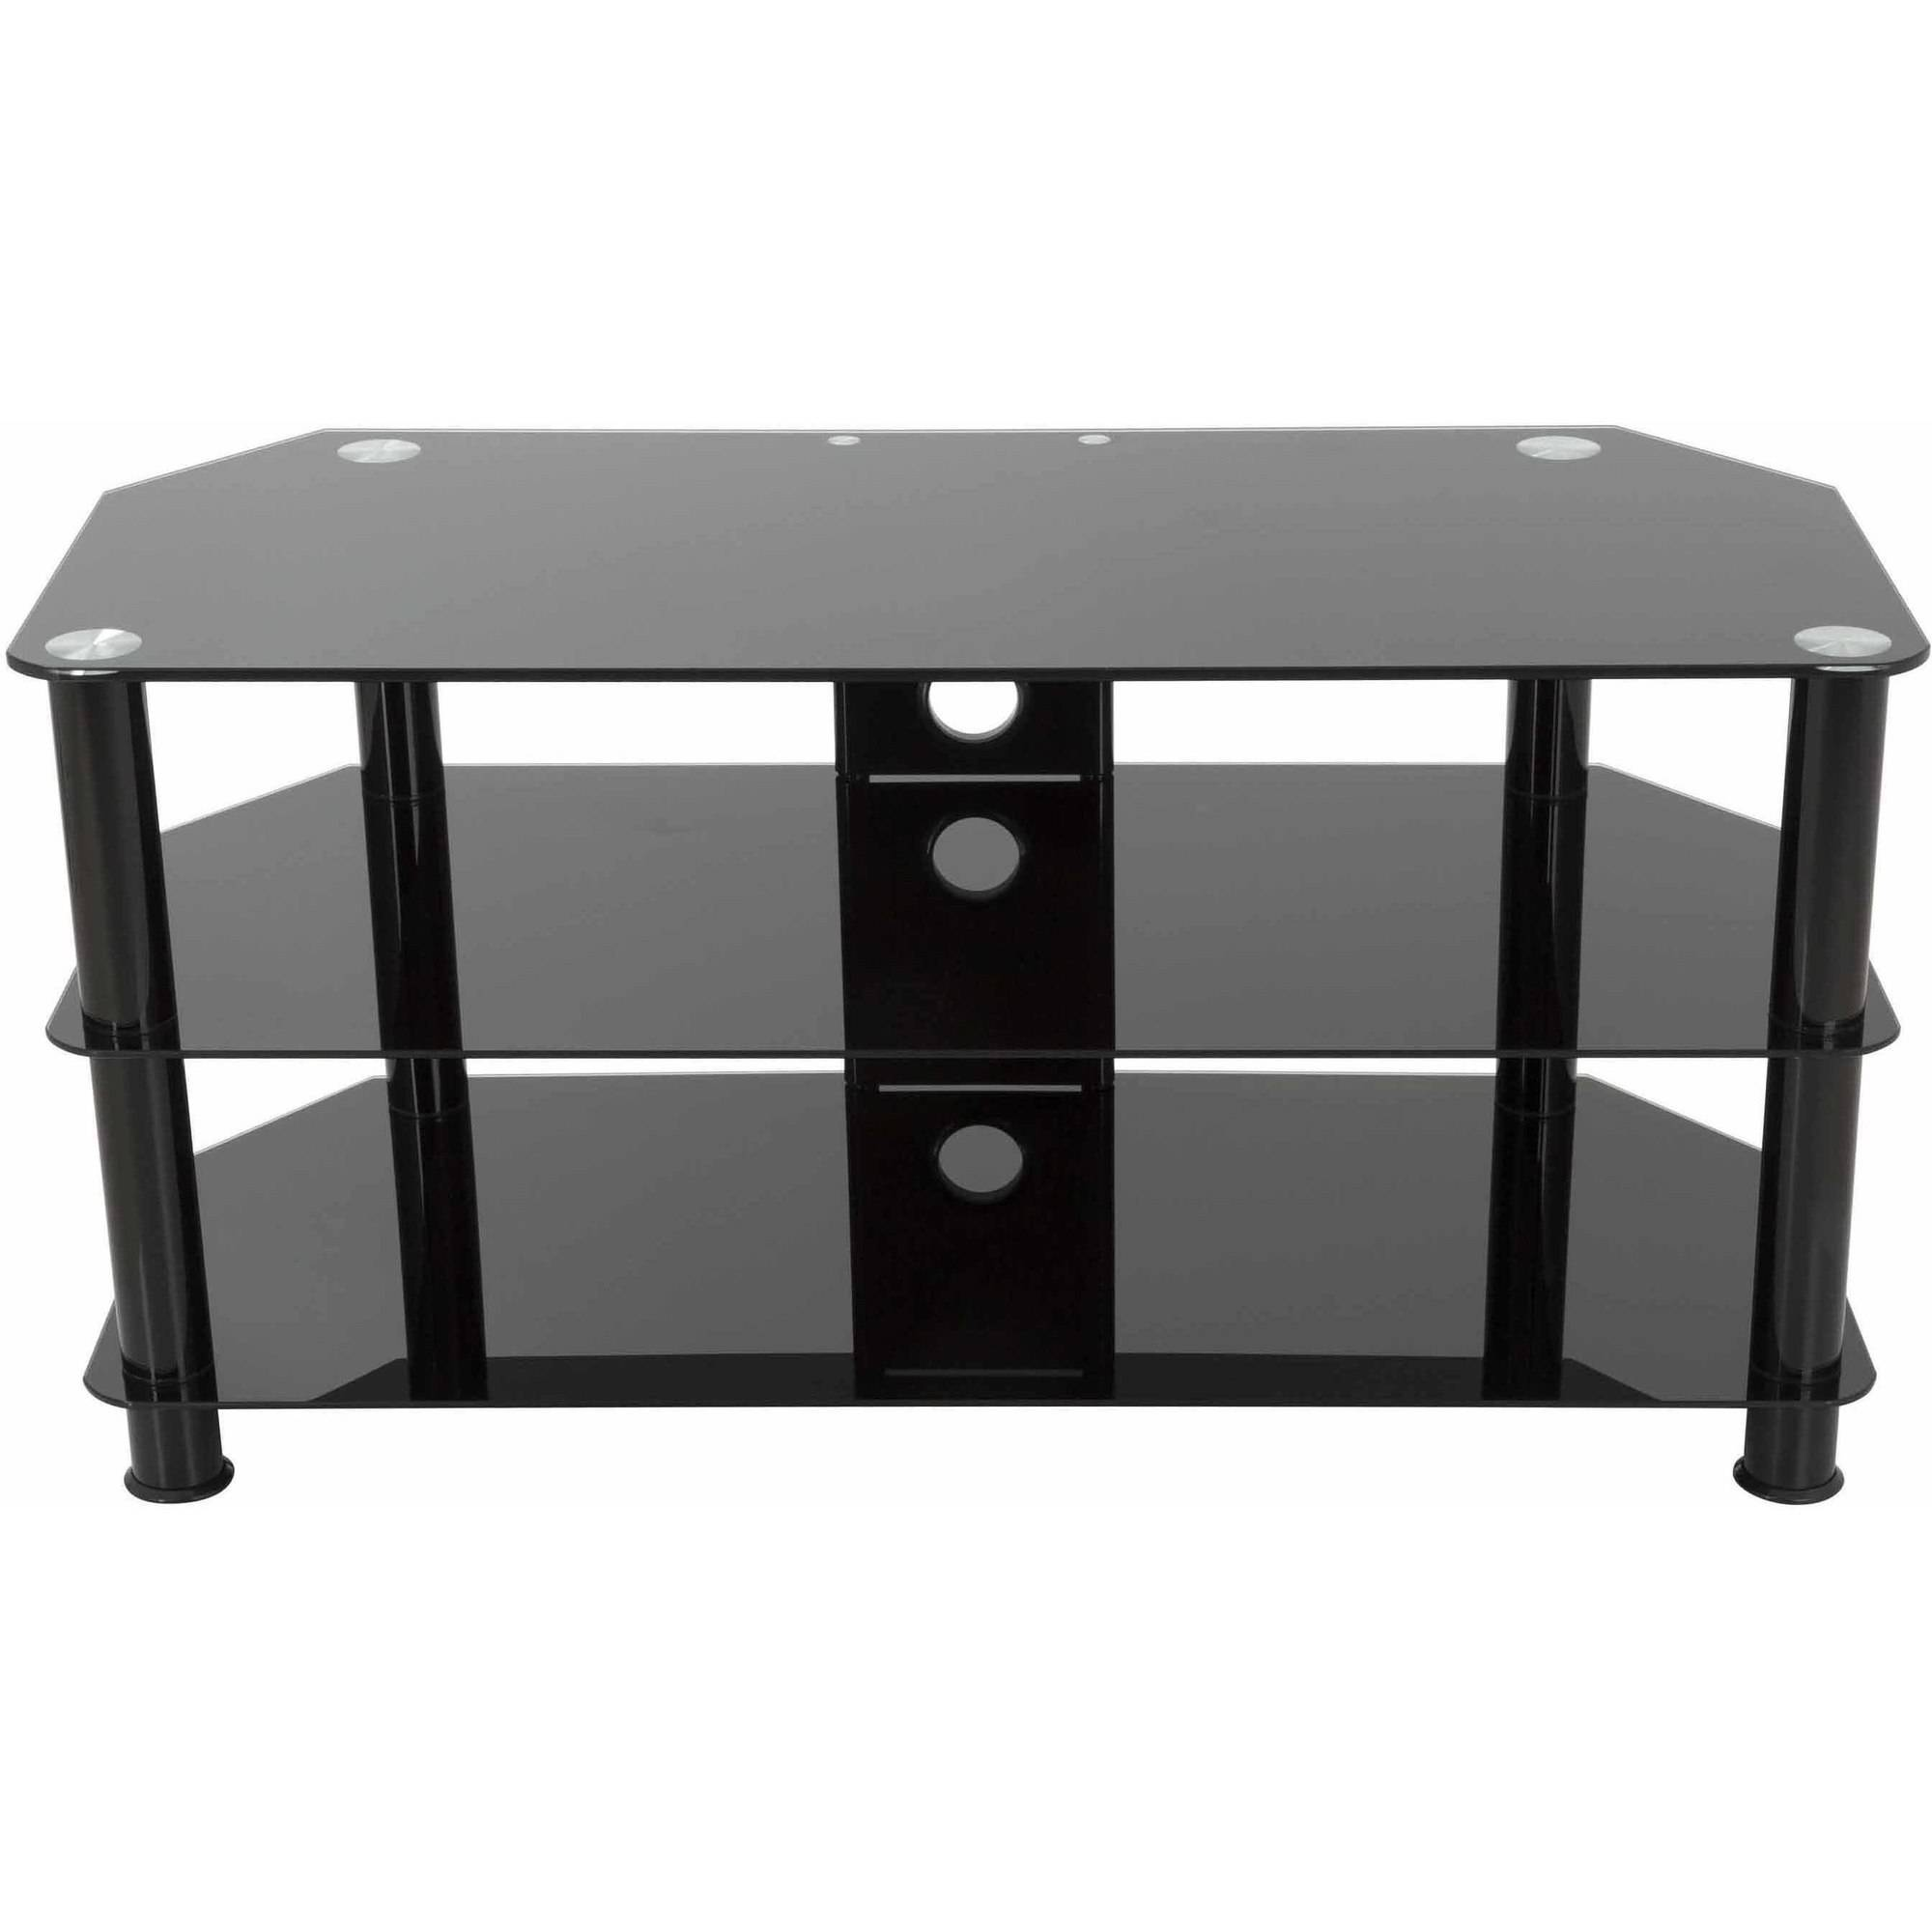 "AVF TV Stand with Cable Management for up to 50"" TVs, Multiple Colors"